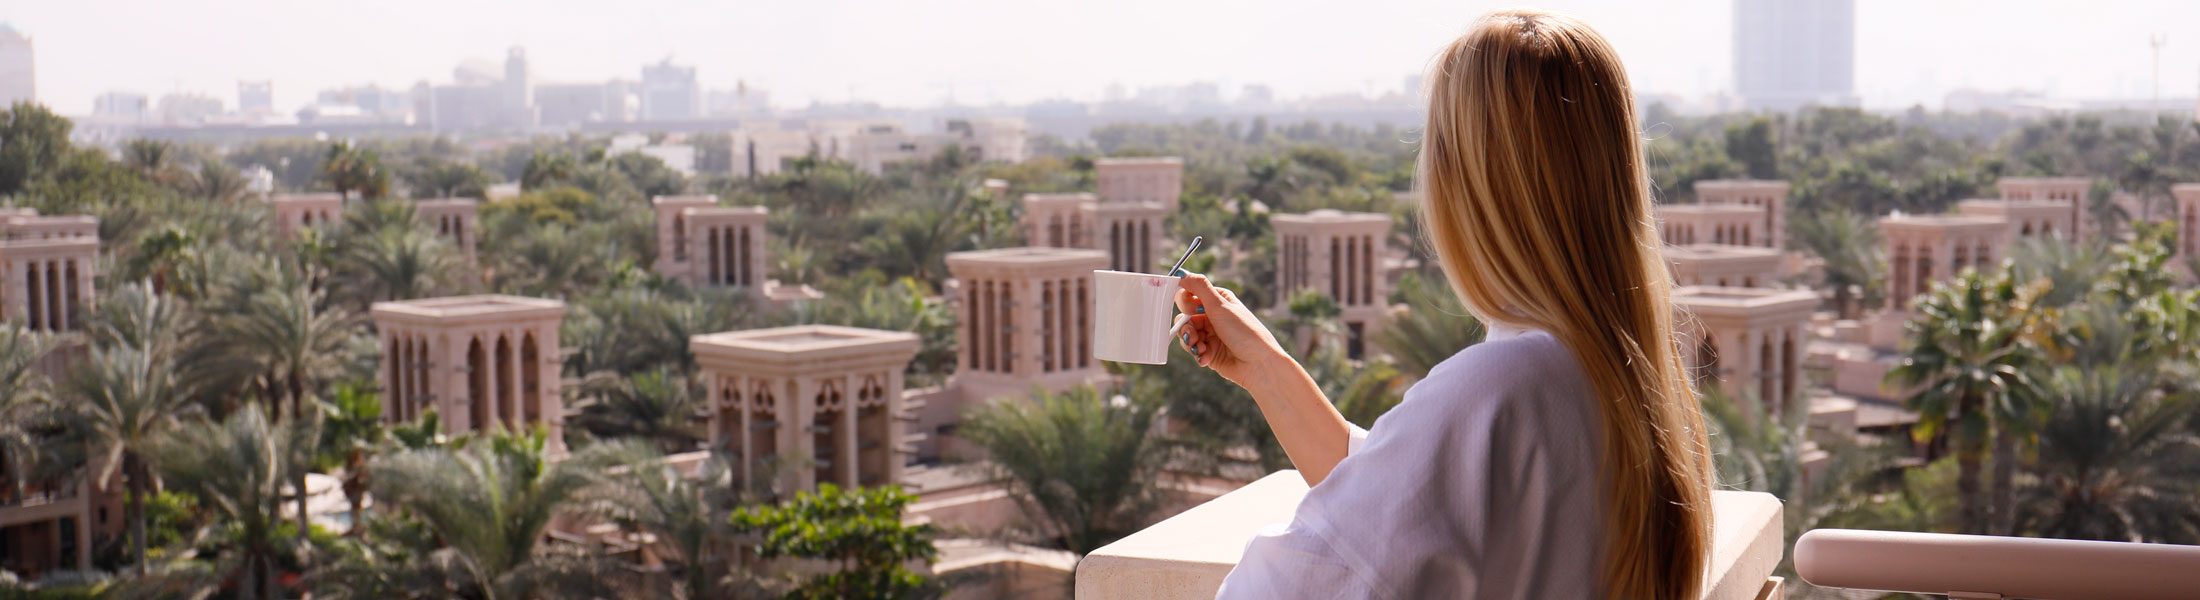 Lady on Balcony at the Jumeirah Al Qasr